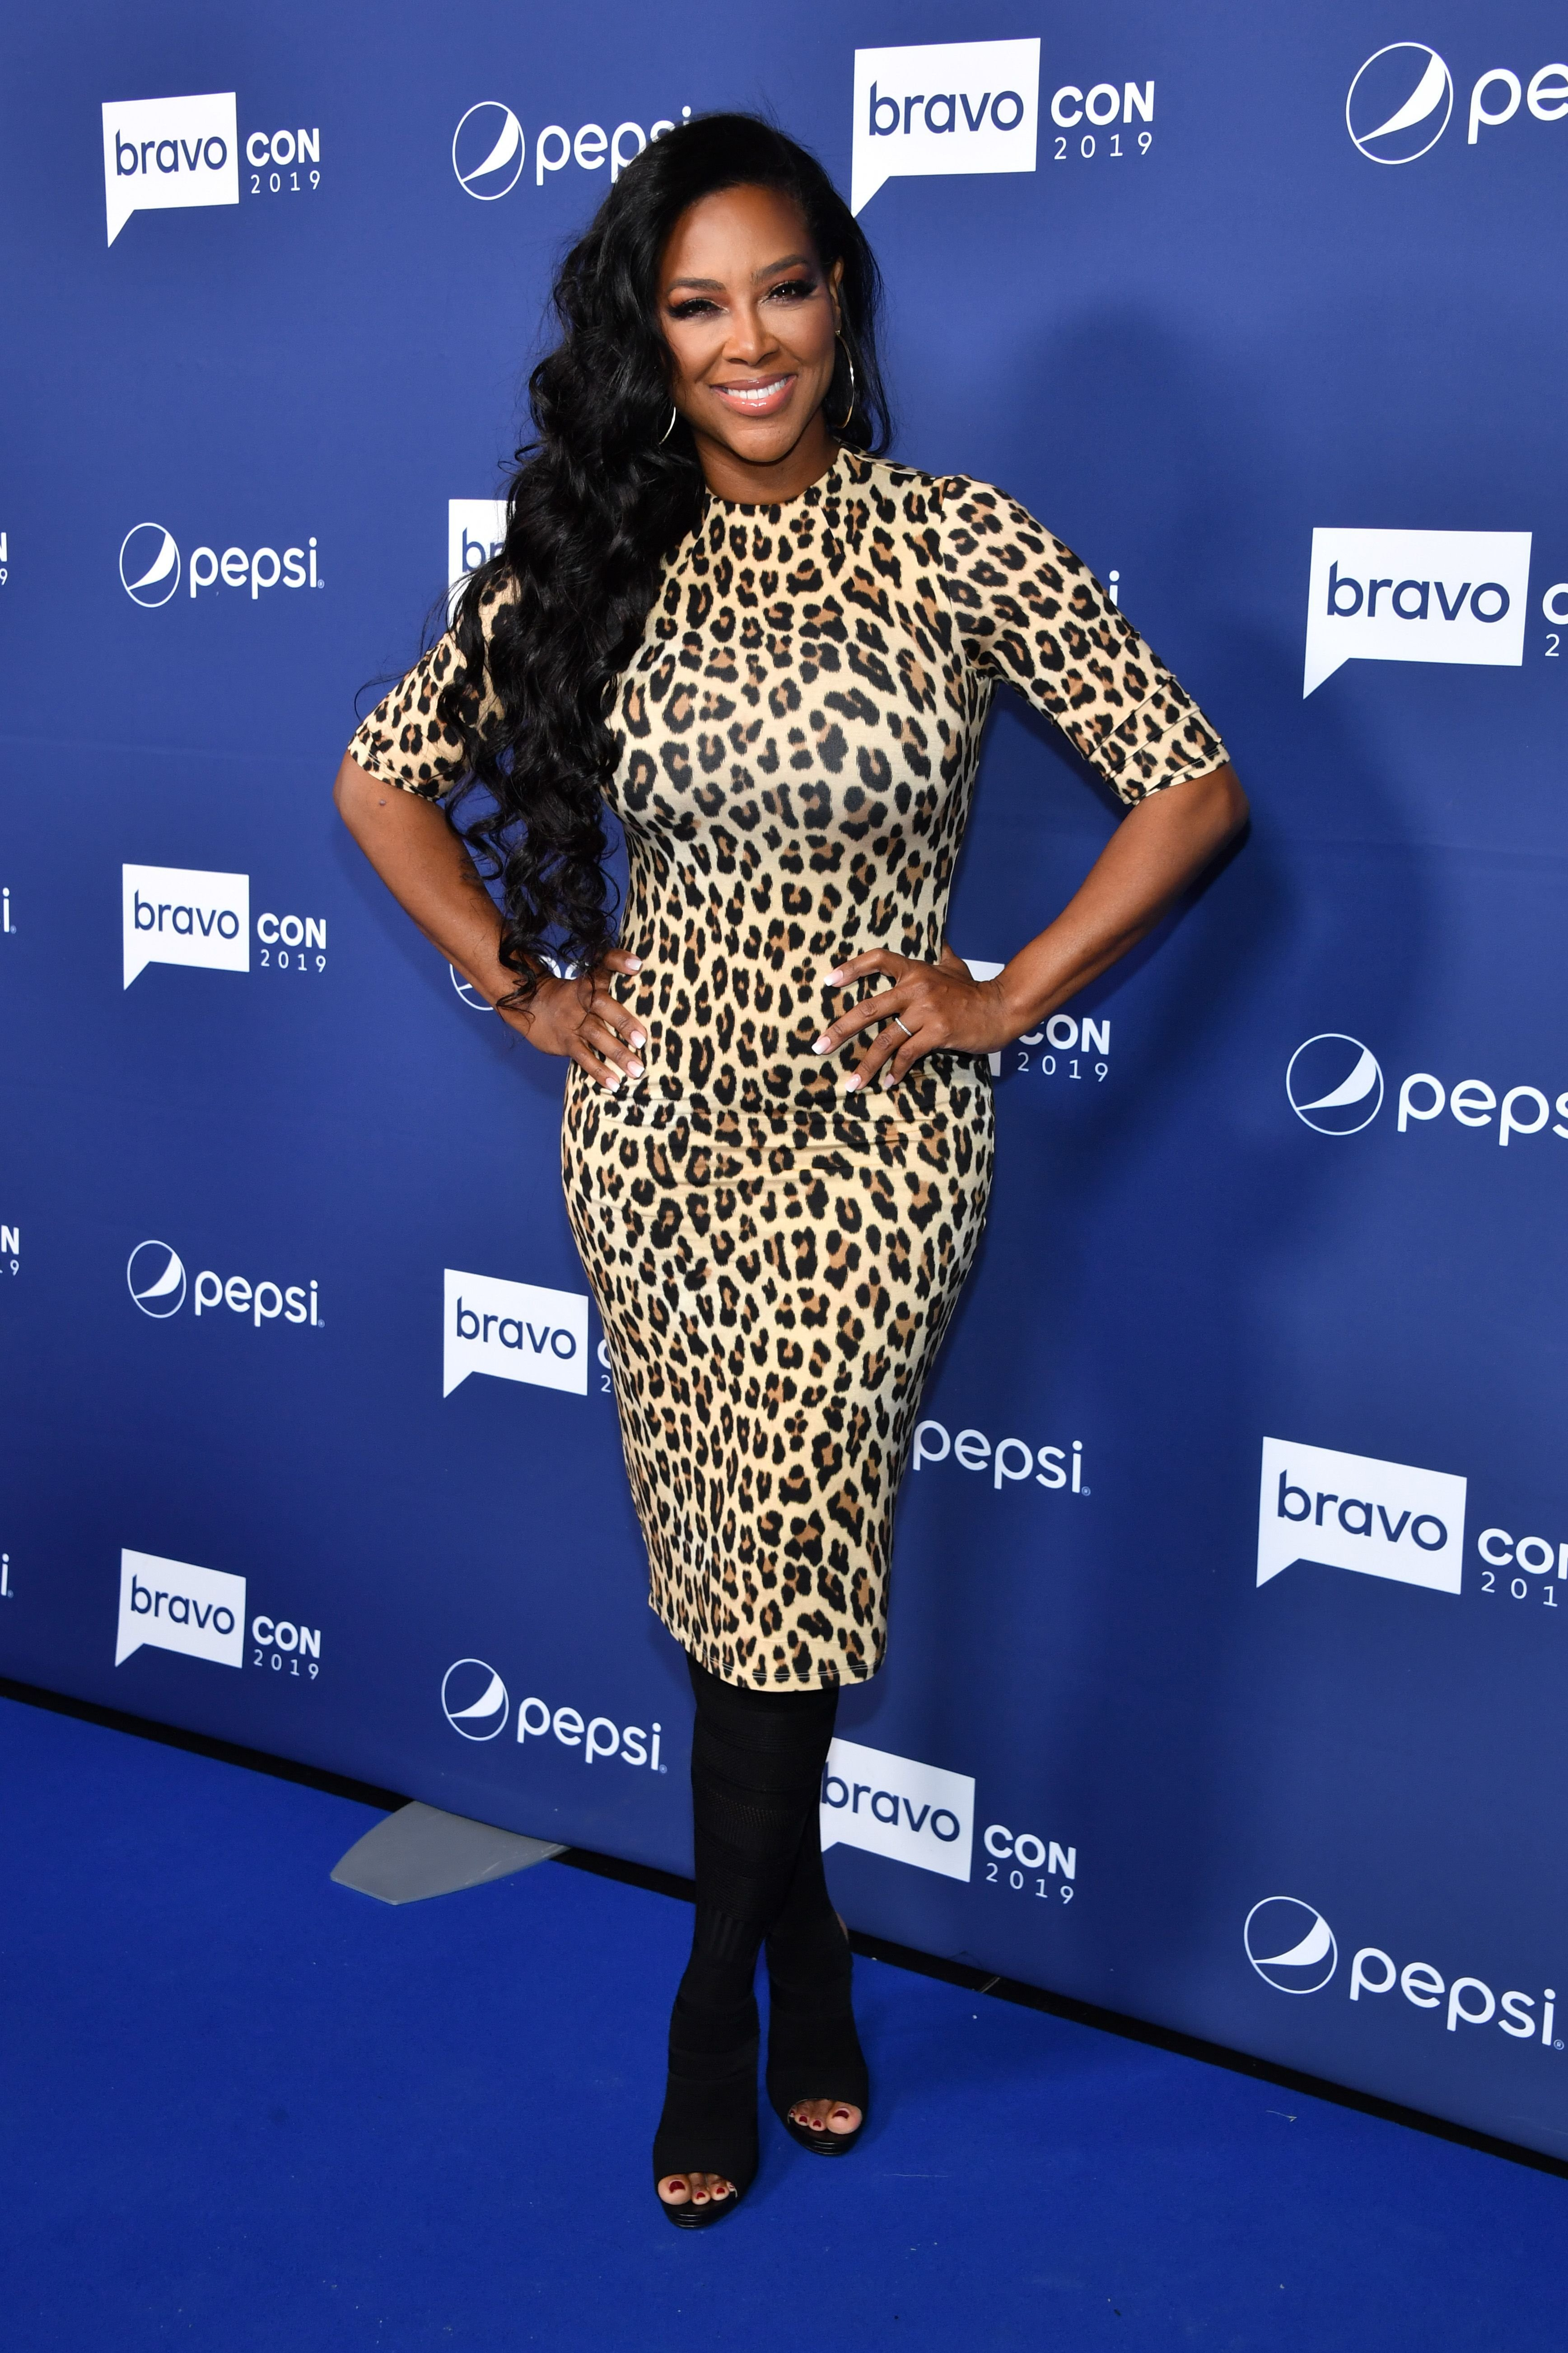 Kenya Moore attends the opening night of 2019 BravoCon at Hammerstein Ballroom on November 15, 2019 in New York City. | Source: Getty Images